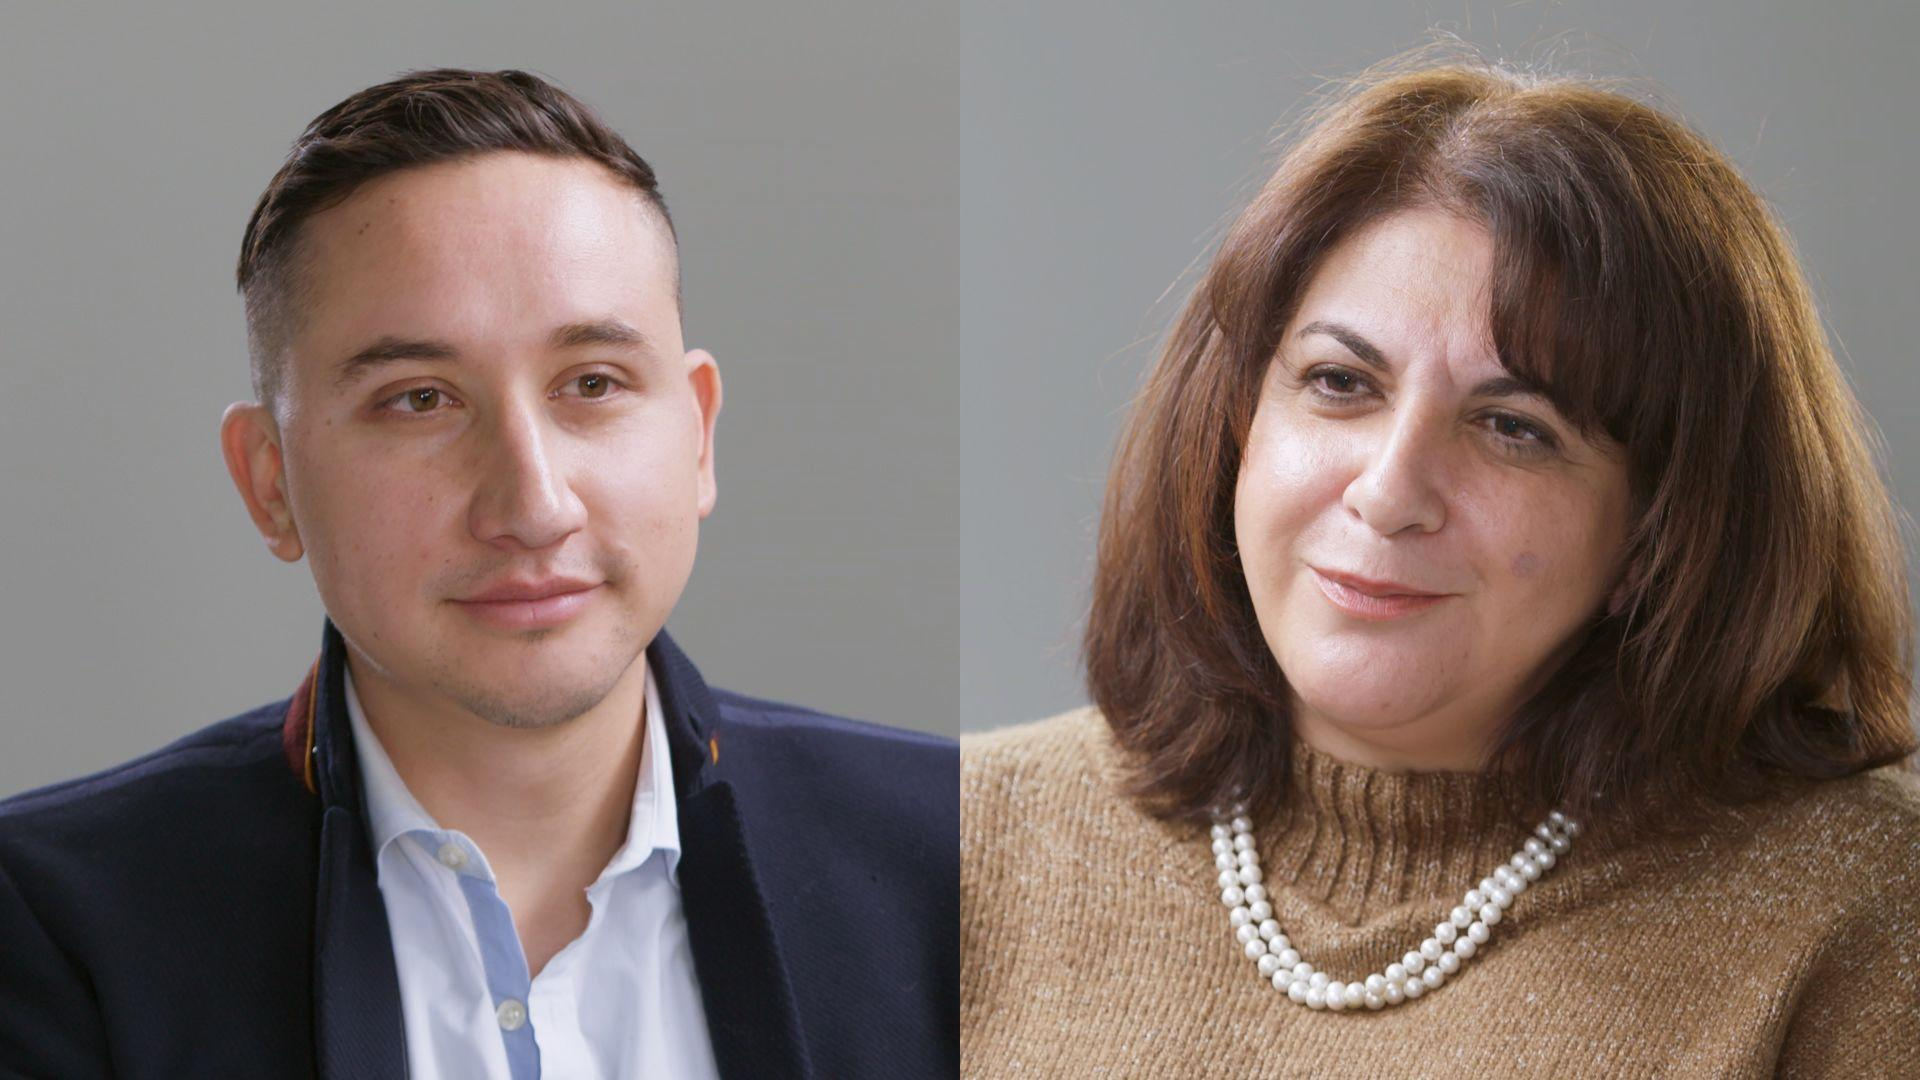 Confronting the Pay Gap: Two Digital Strategists Compare Salaries